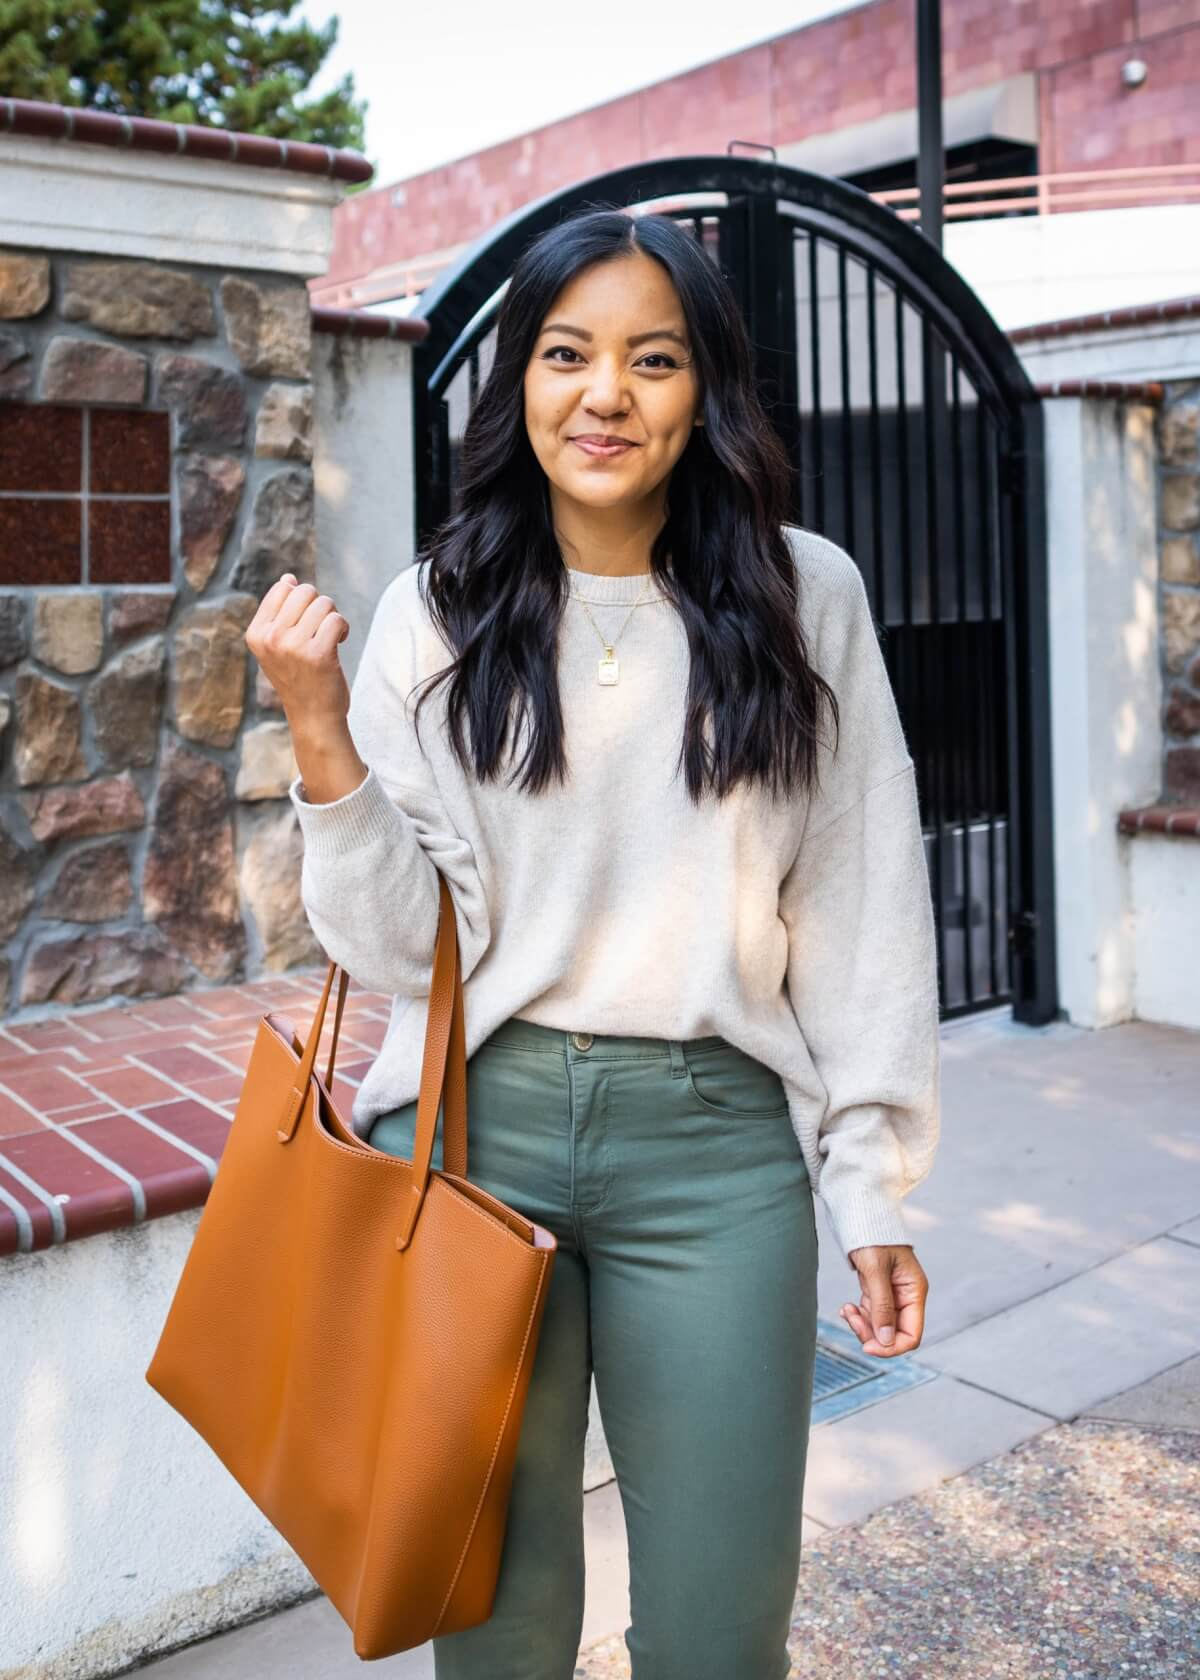 Comfy Casual Work Outfit: Treasure & Bond cream sweater + Wit & Wisdom olive green ankle pants + gold pendant necklace + tan tote